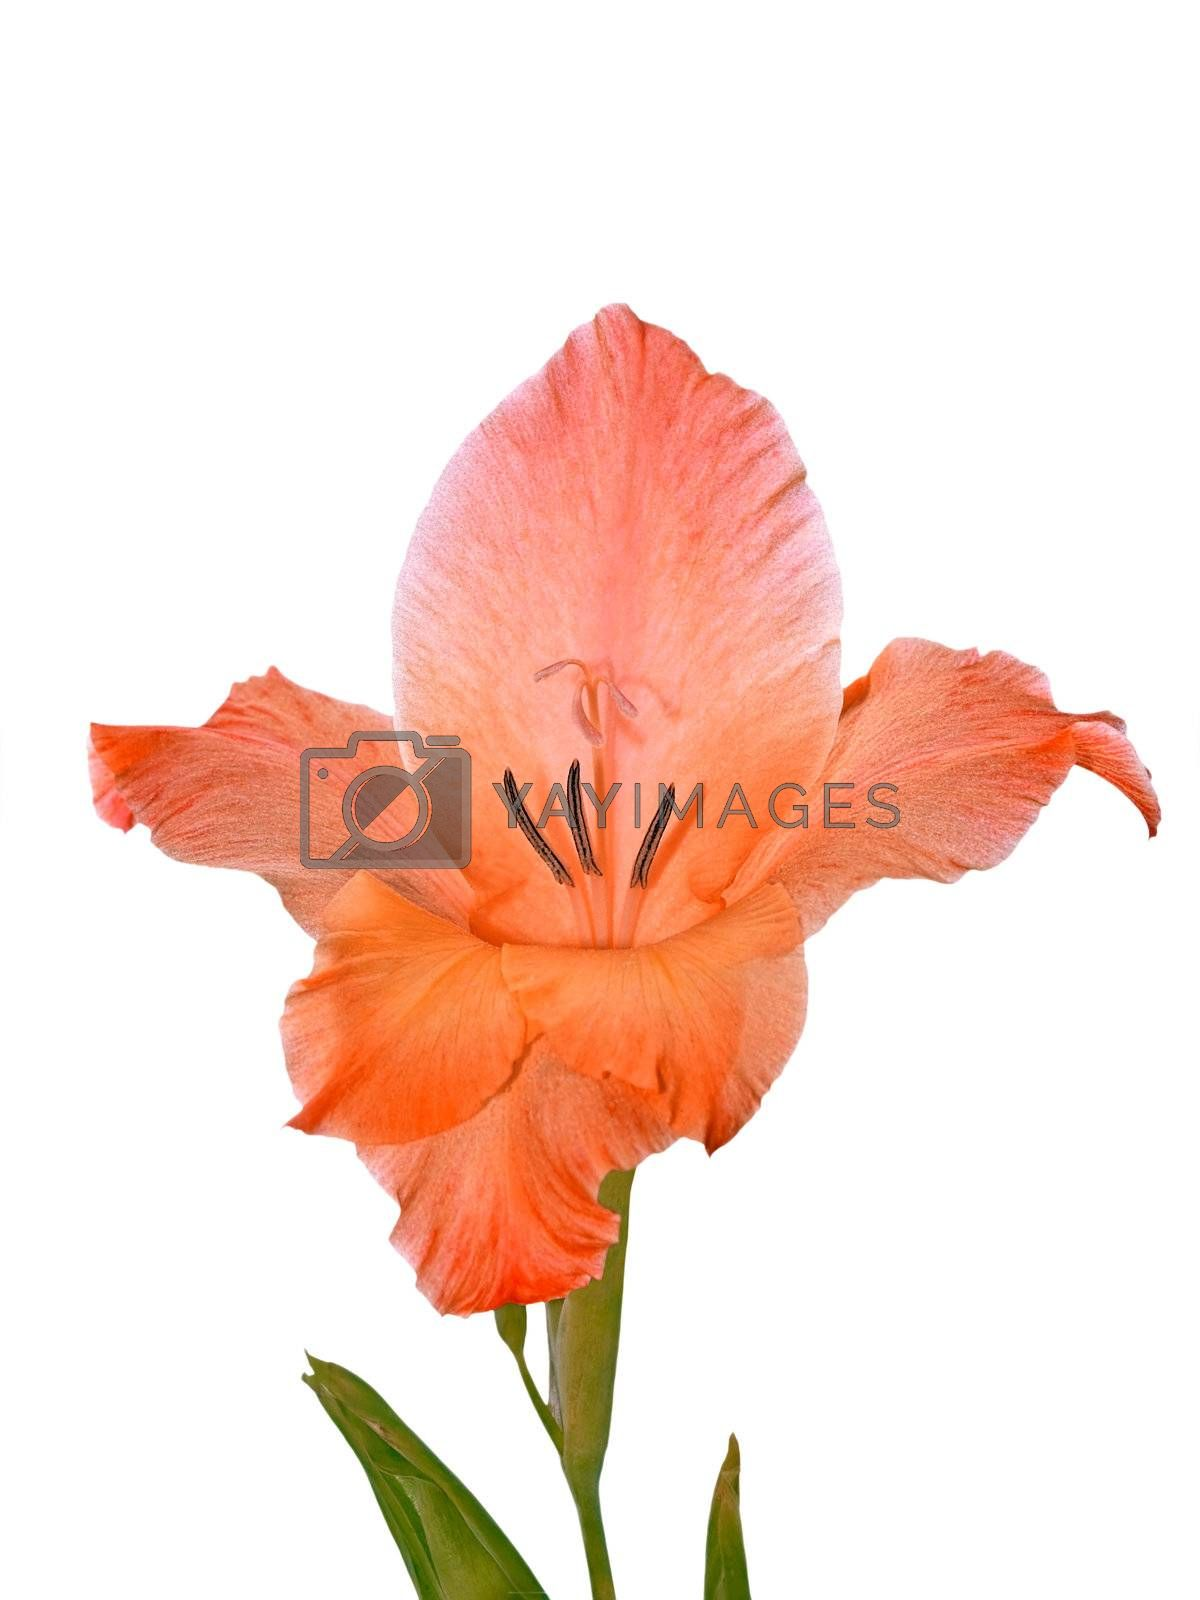 Gladiolus flower close-up isolated on a white background